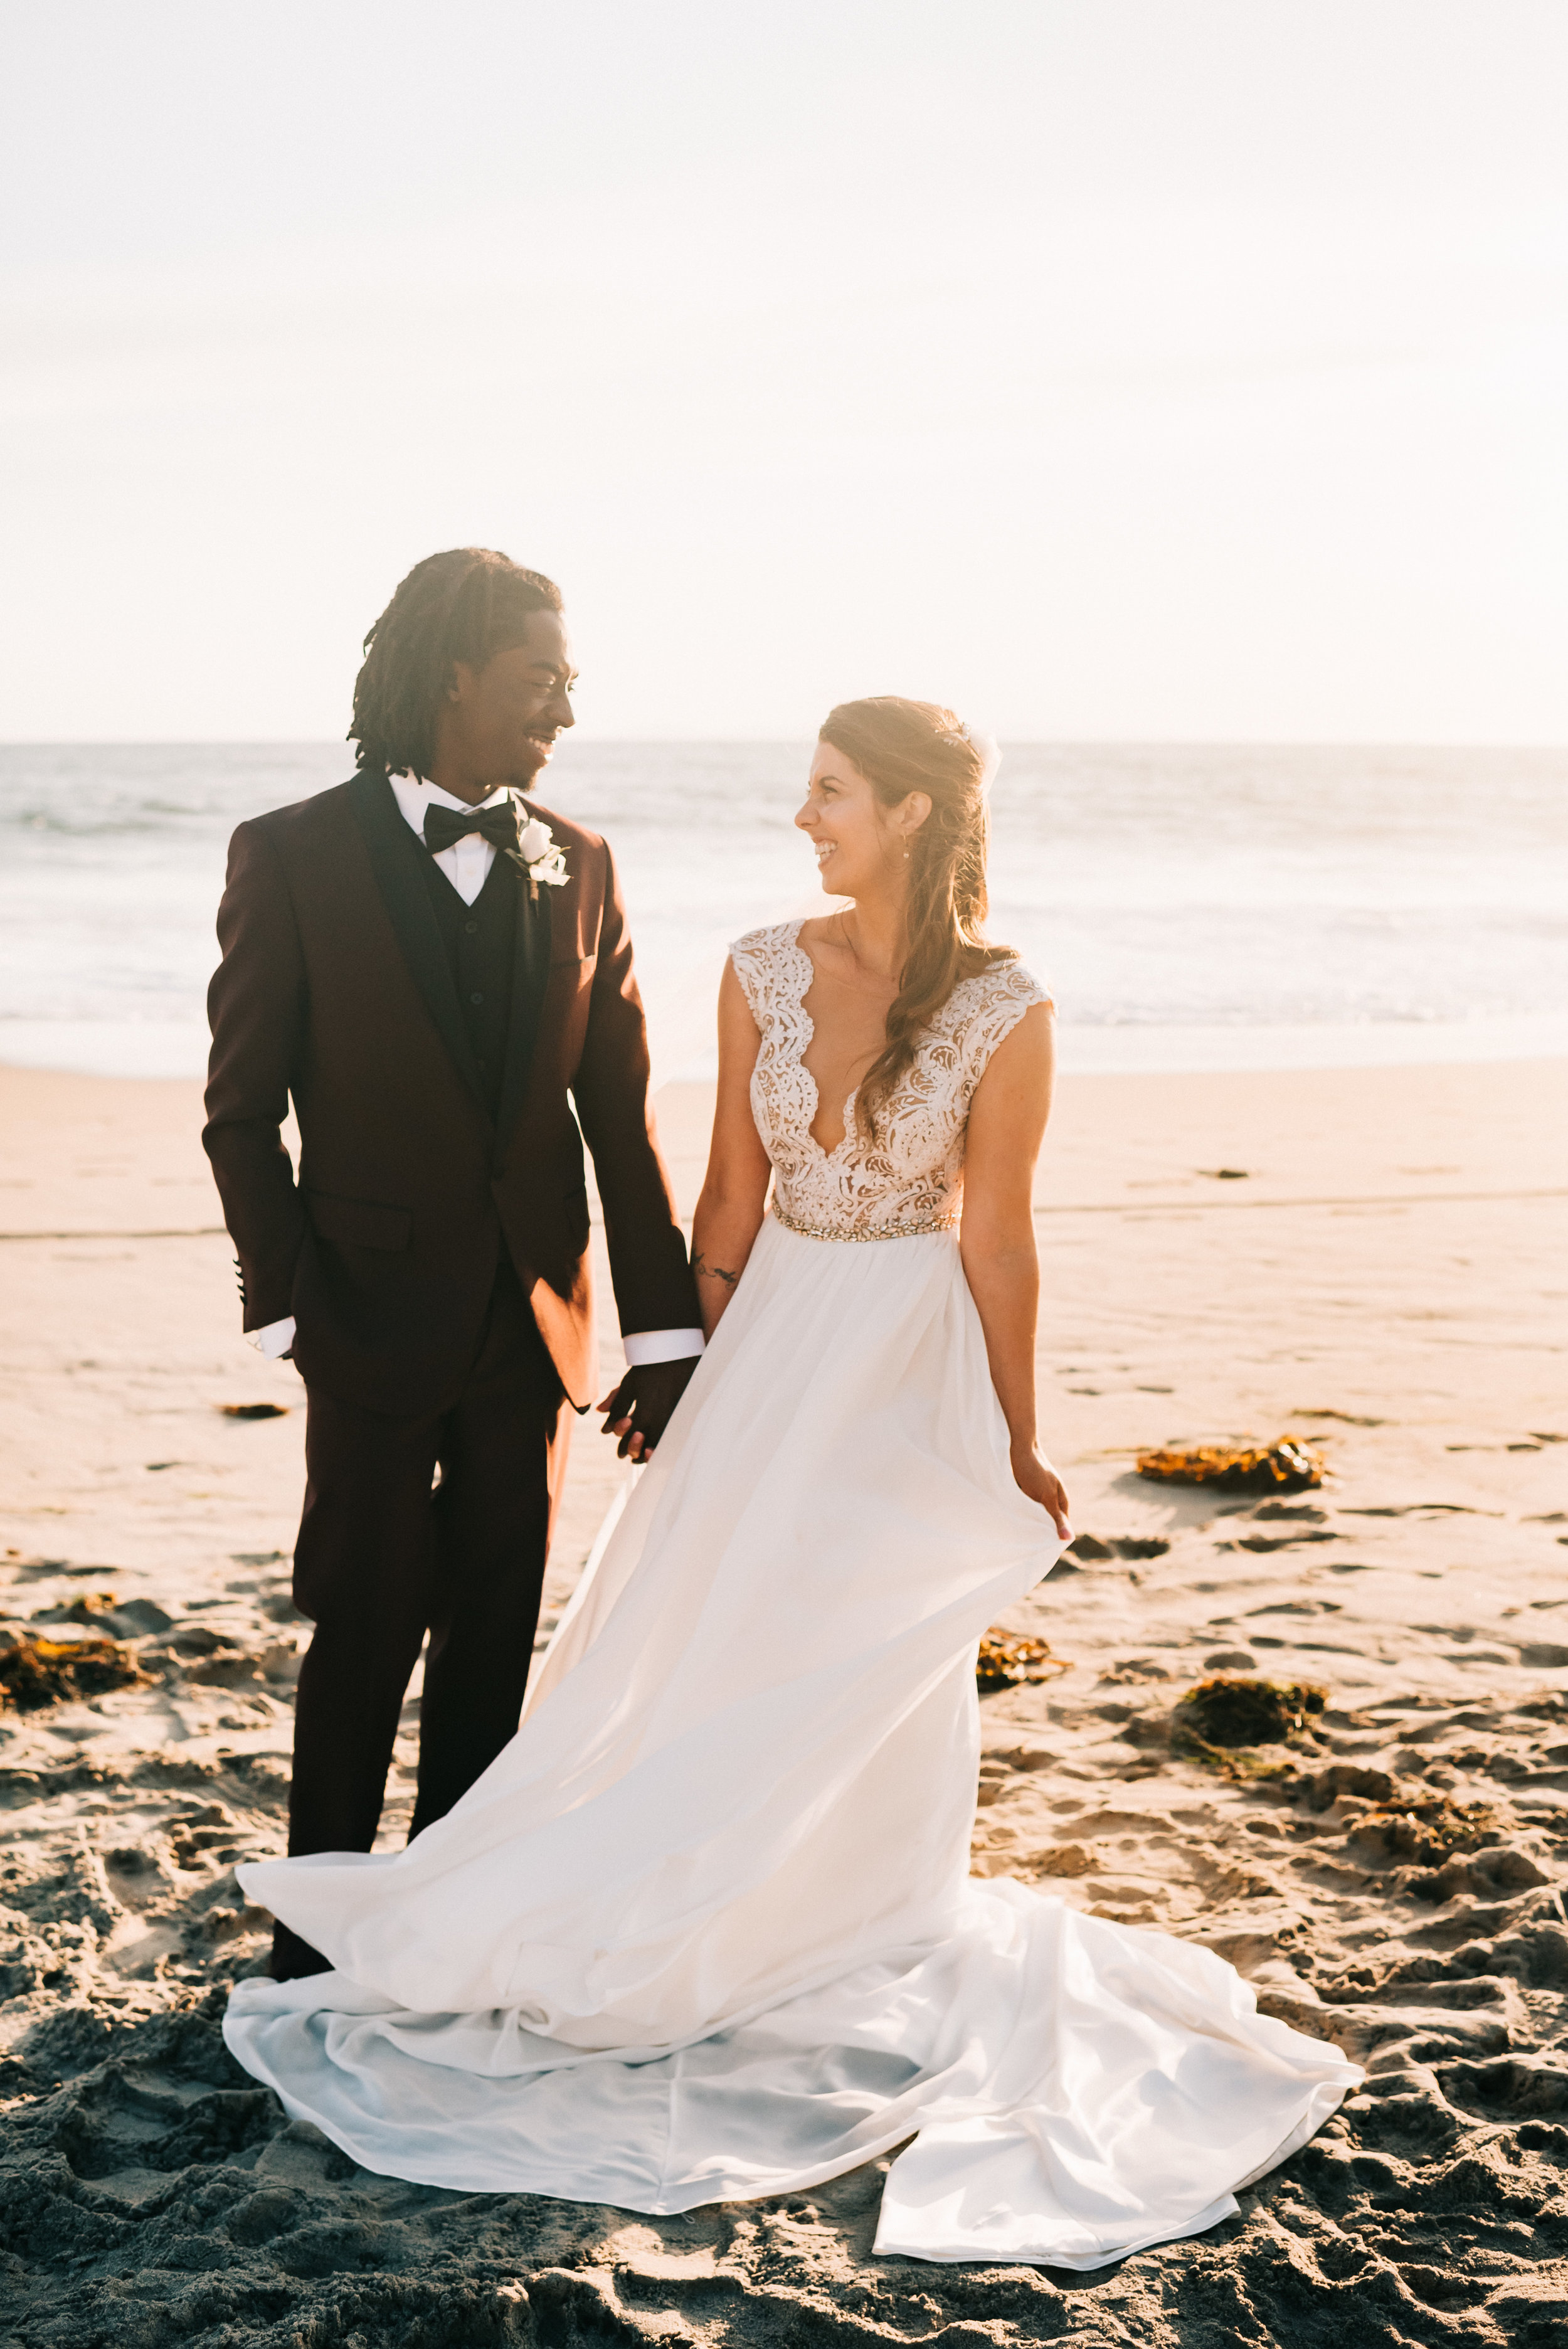 southern california laguna beach salt creek beach los angeles socal boho bay area akland san francisco engagement wedding nontraditional fun creative eclectic photographer magic-885.jpg